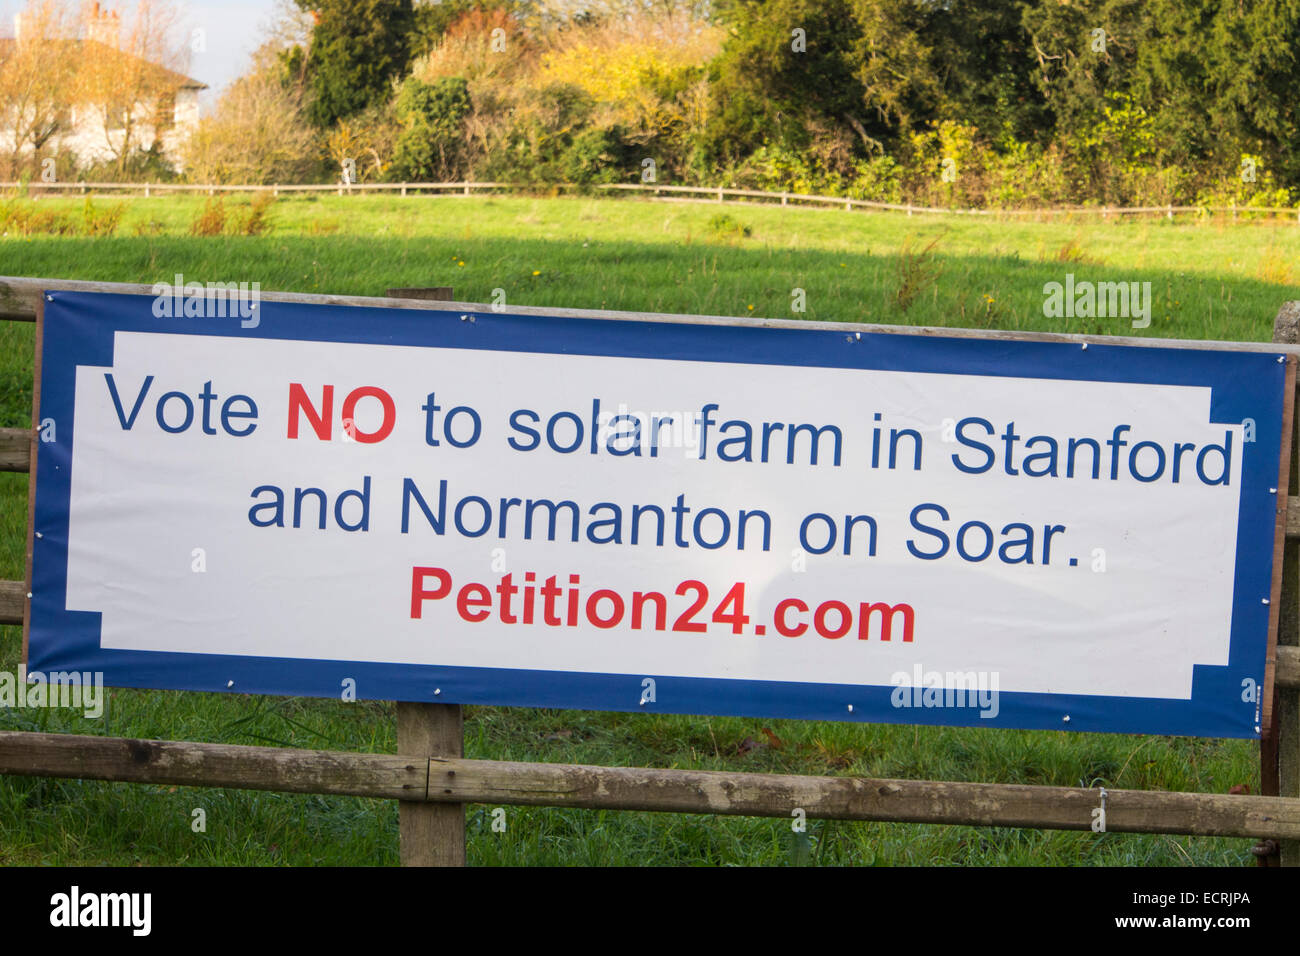 A banner in Stanford on Soar in Leicestershire protesting about a planning application for a solar power station. - Stock Image